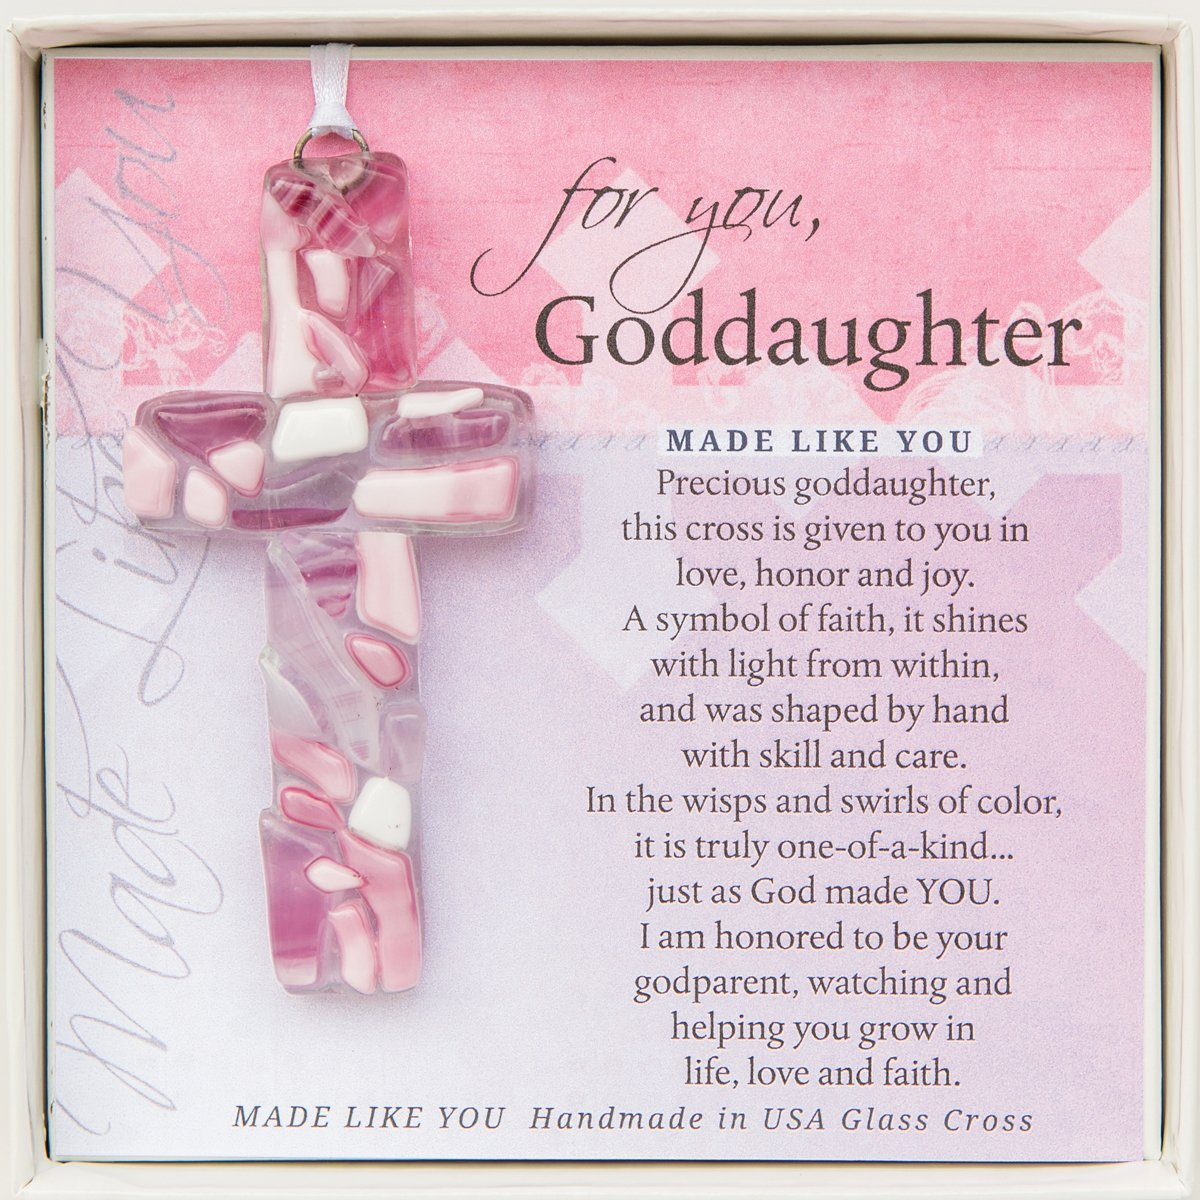 For You, Goddaughter Pink Mosaic Handmade Glass Cross Grandparent Gift